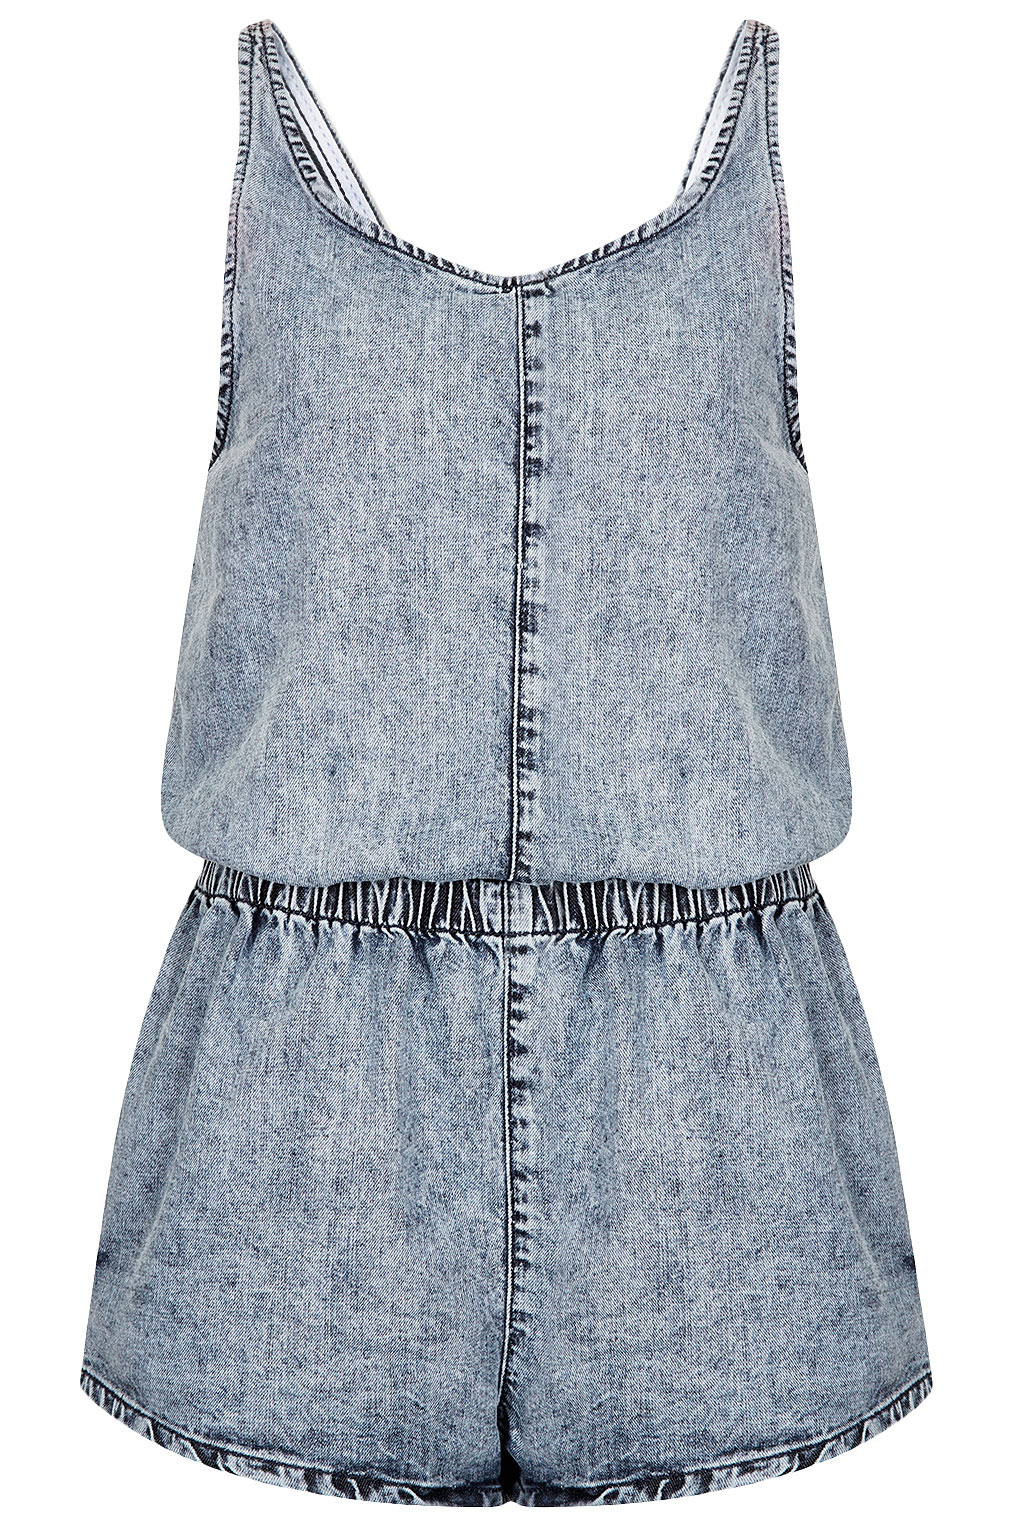 Topshop acid denim playsuit in blue lyst for Womens denim shirts topshop